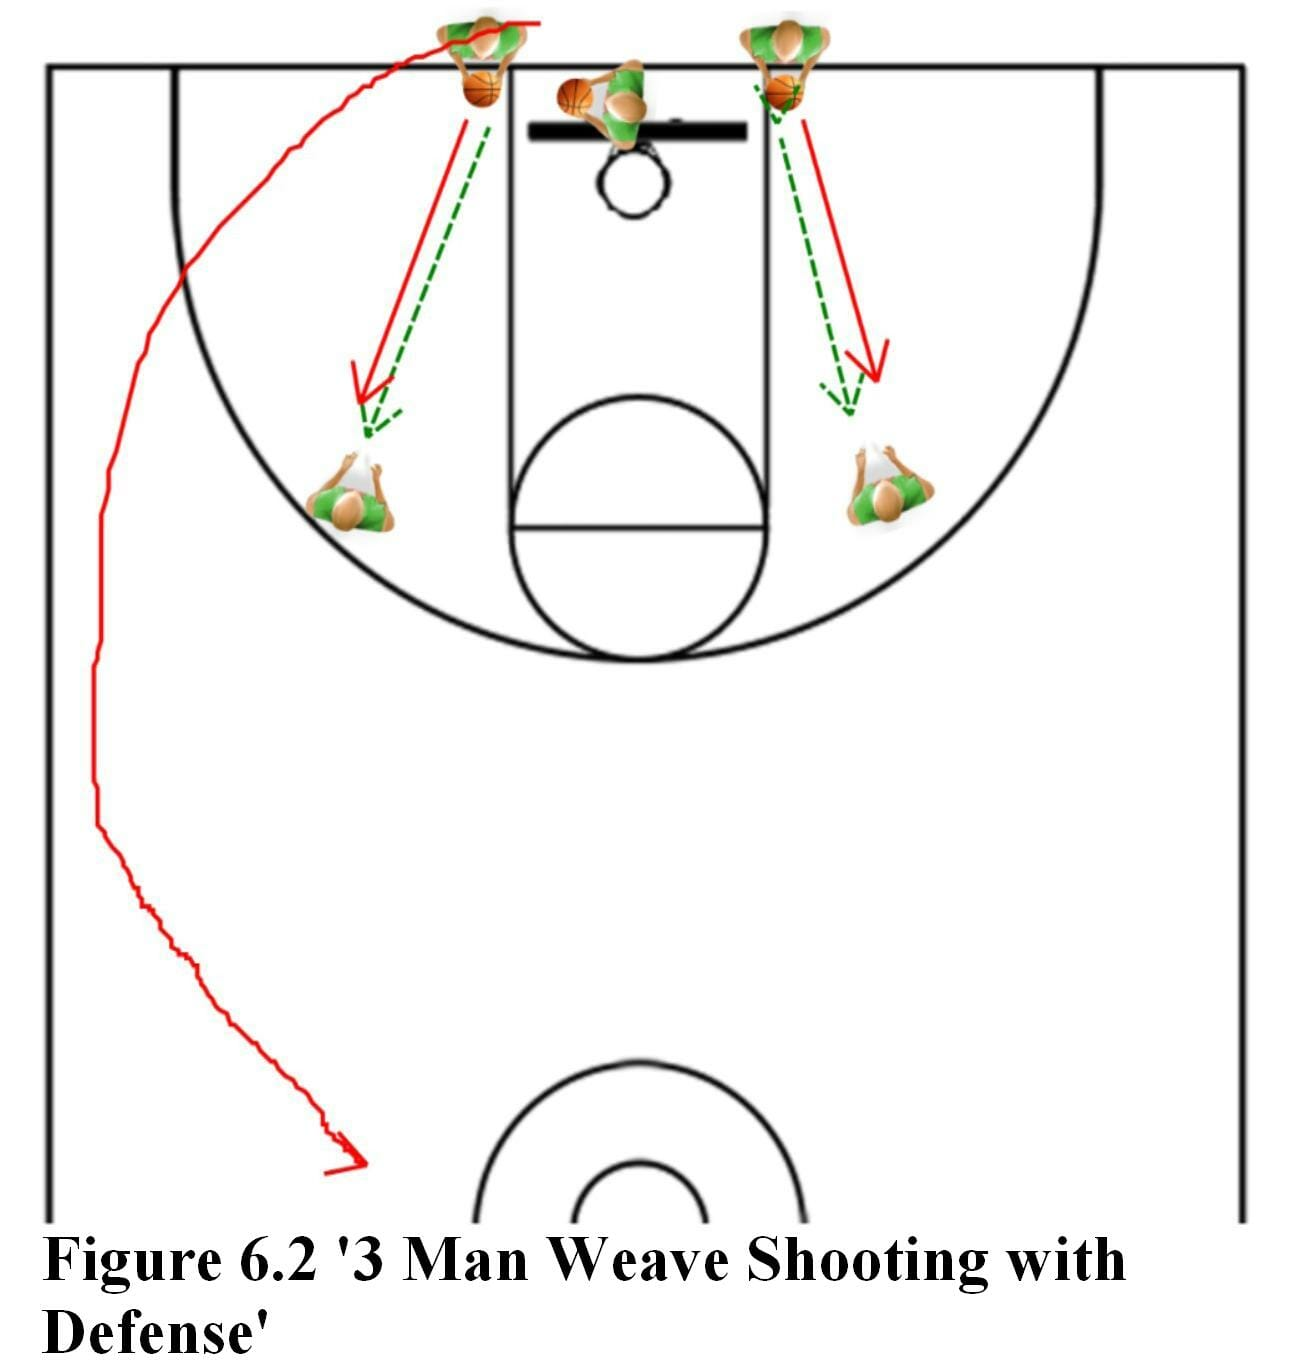 3 Man Weave Shooting With Defense